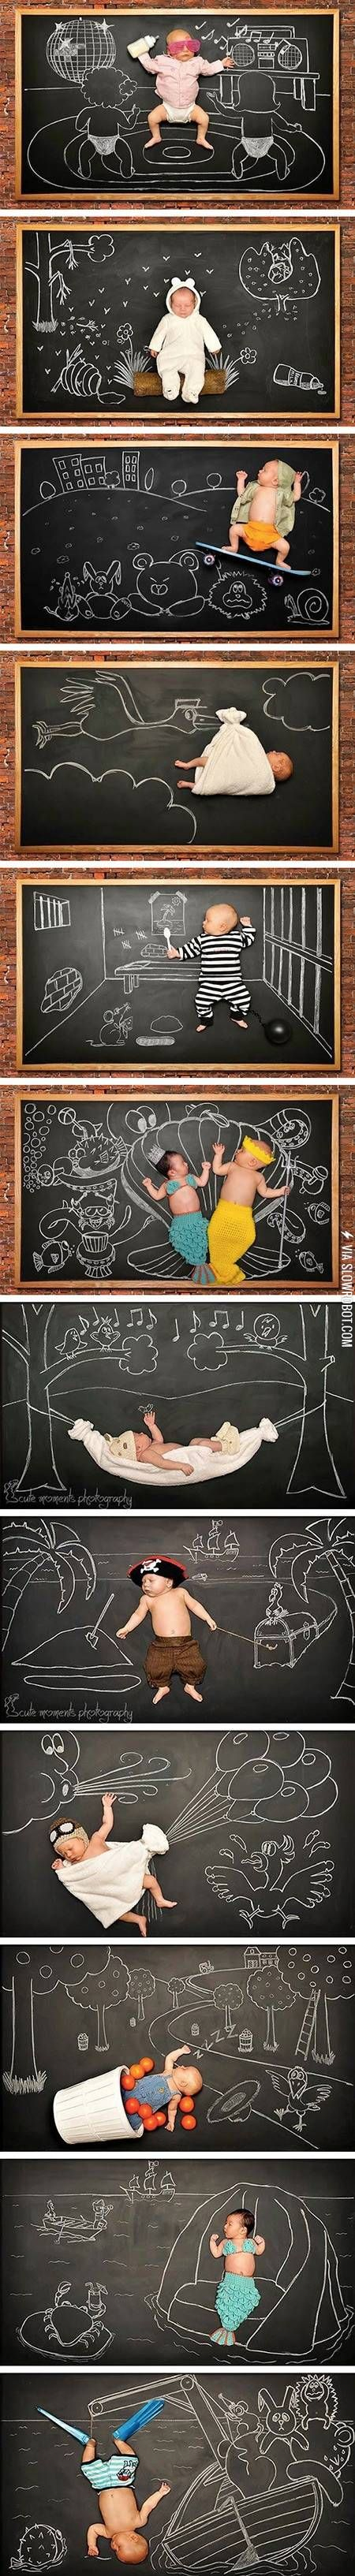 Chalkboard baby photos